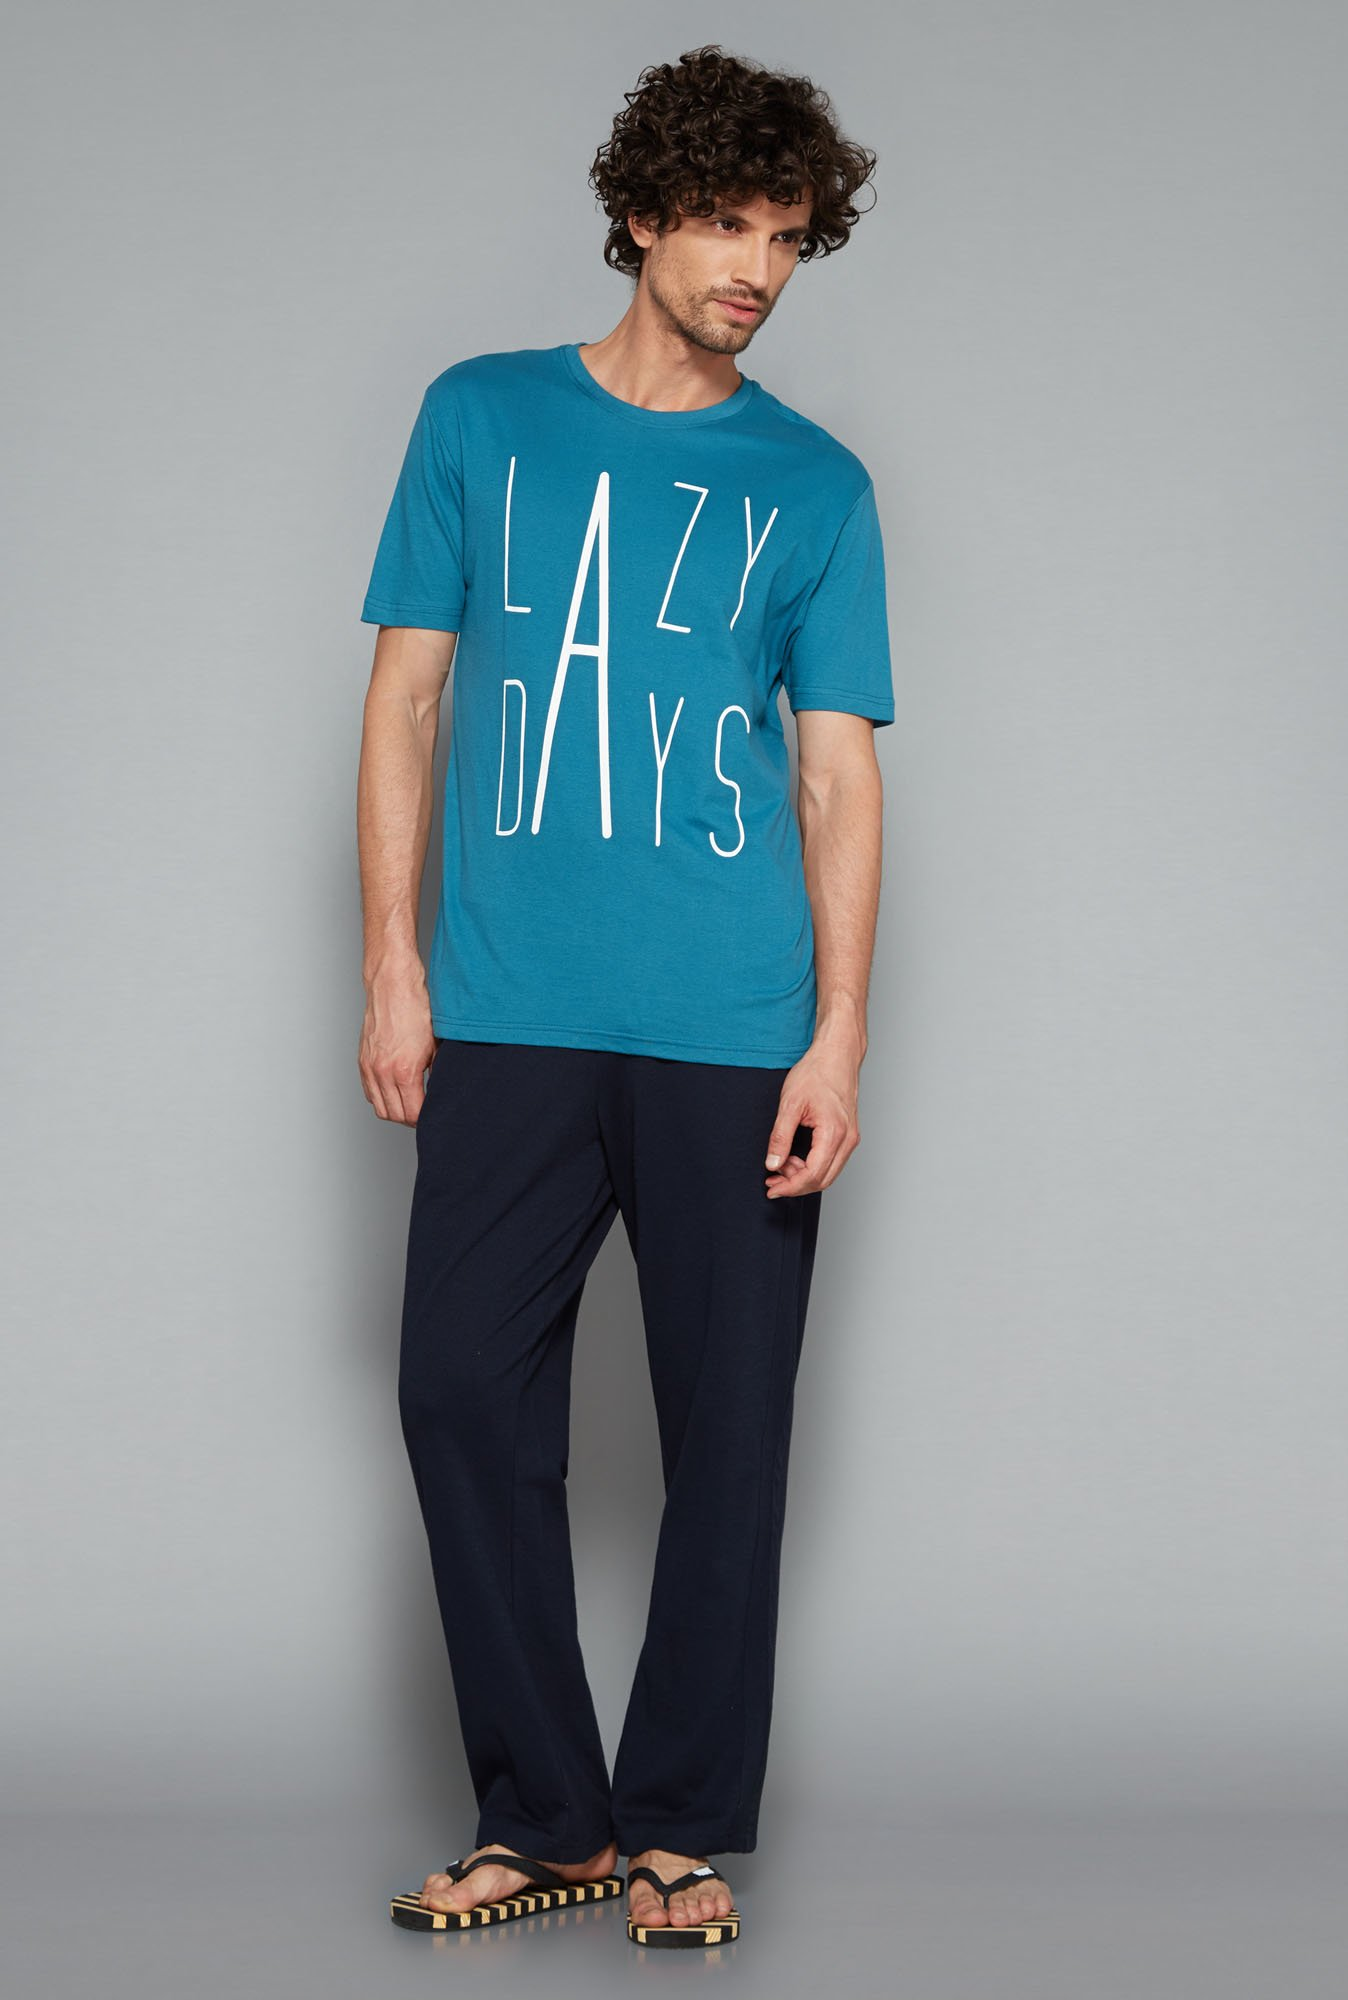 Bodybasics Teal Printed T Shirt